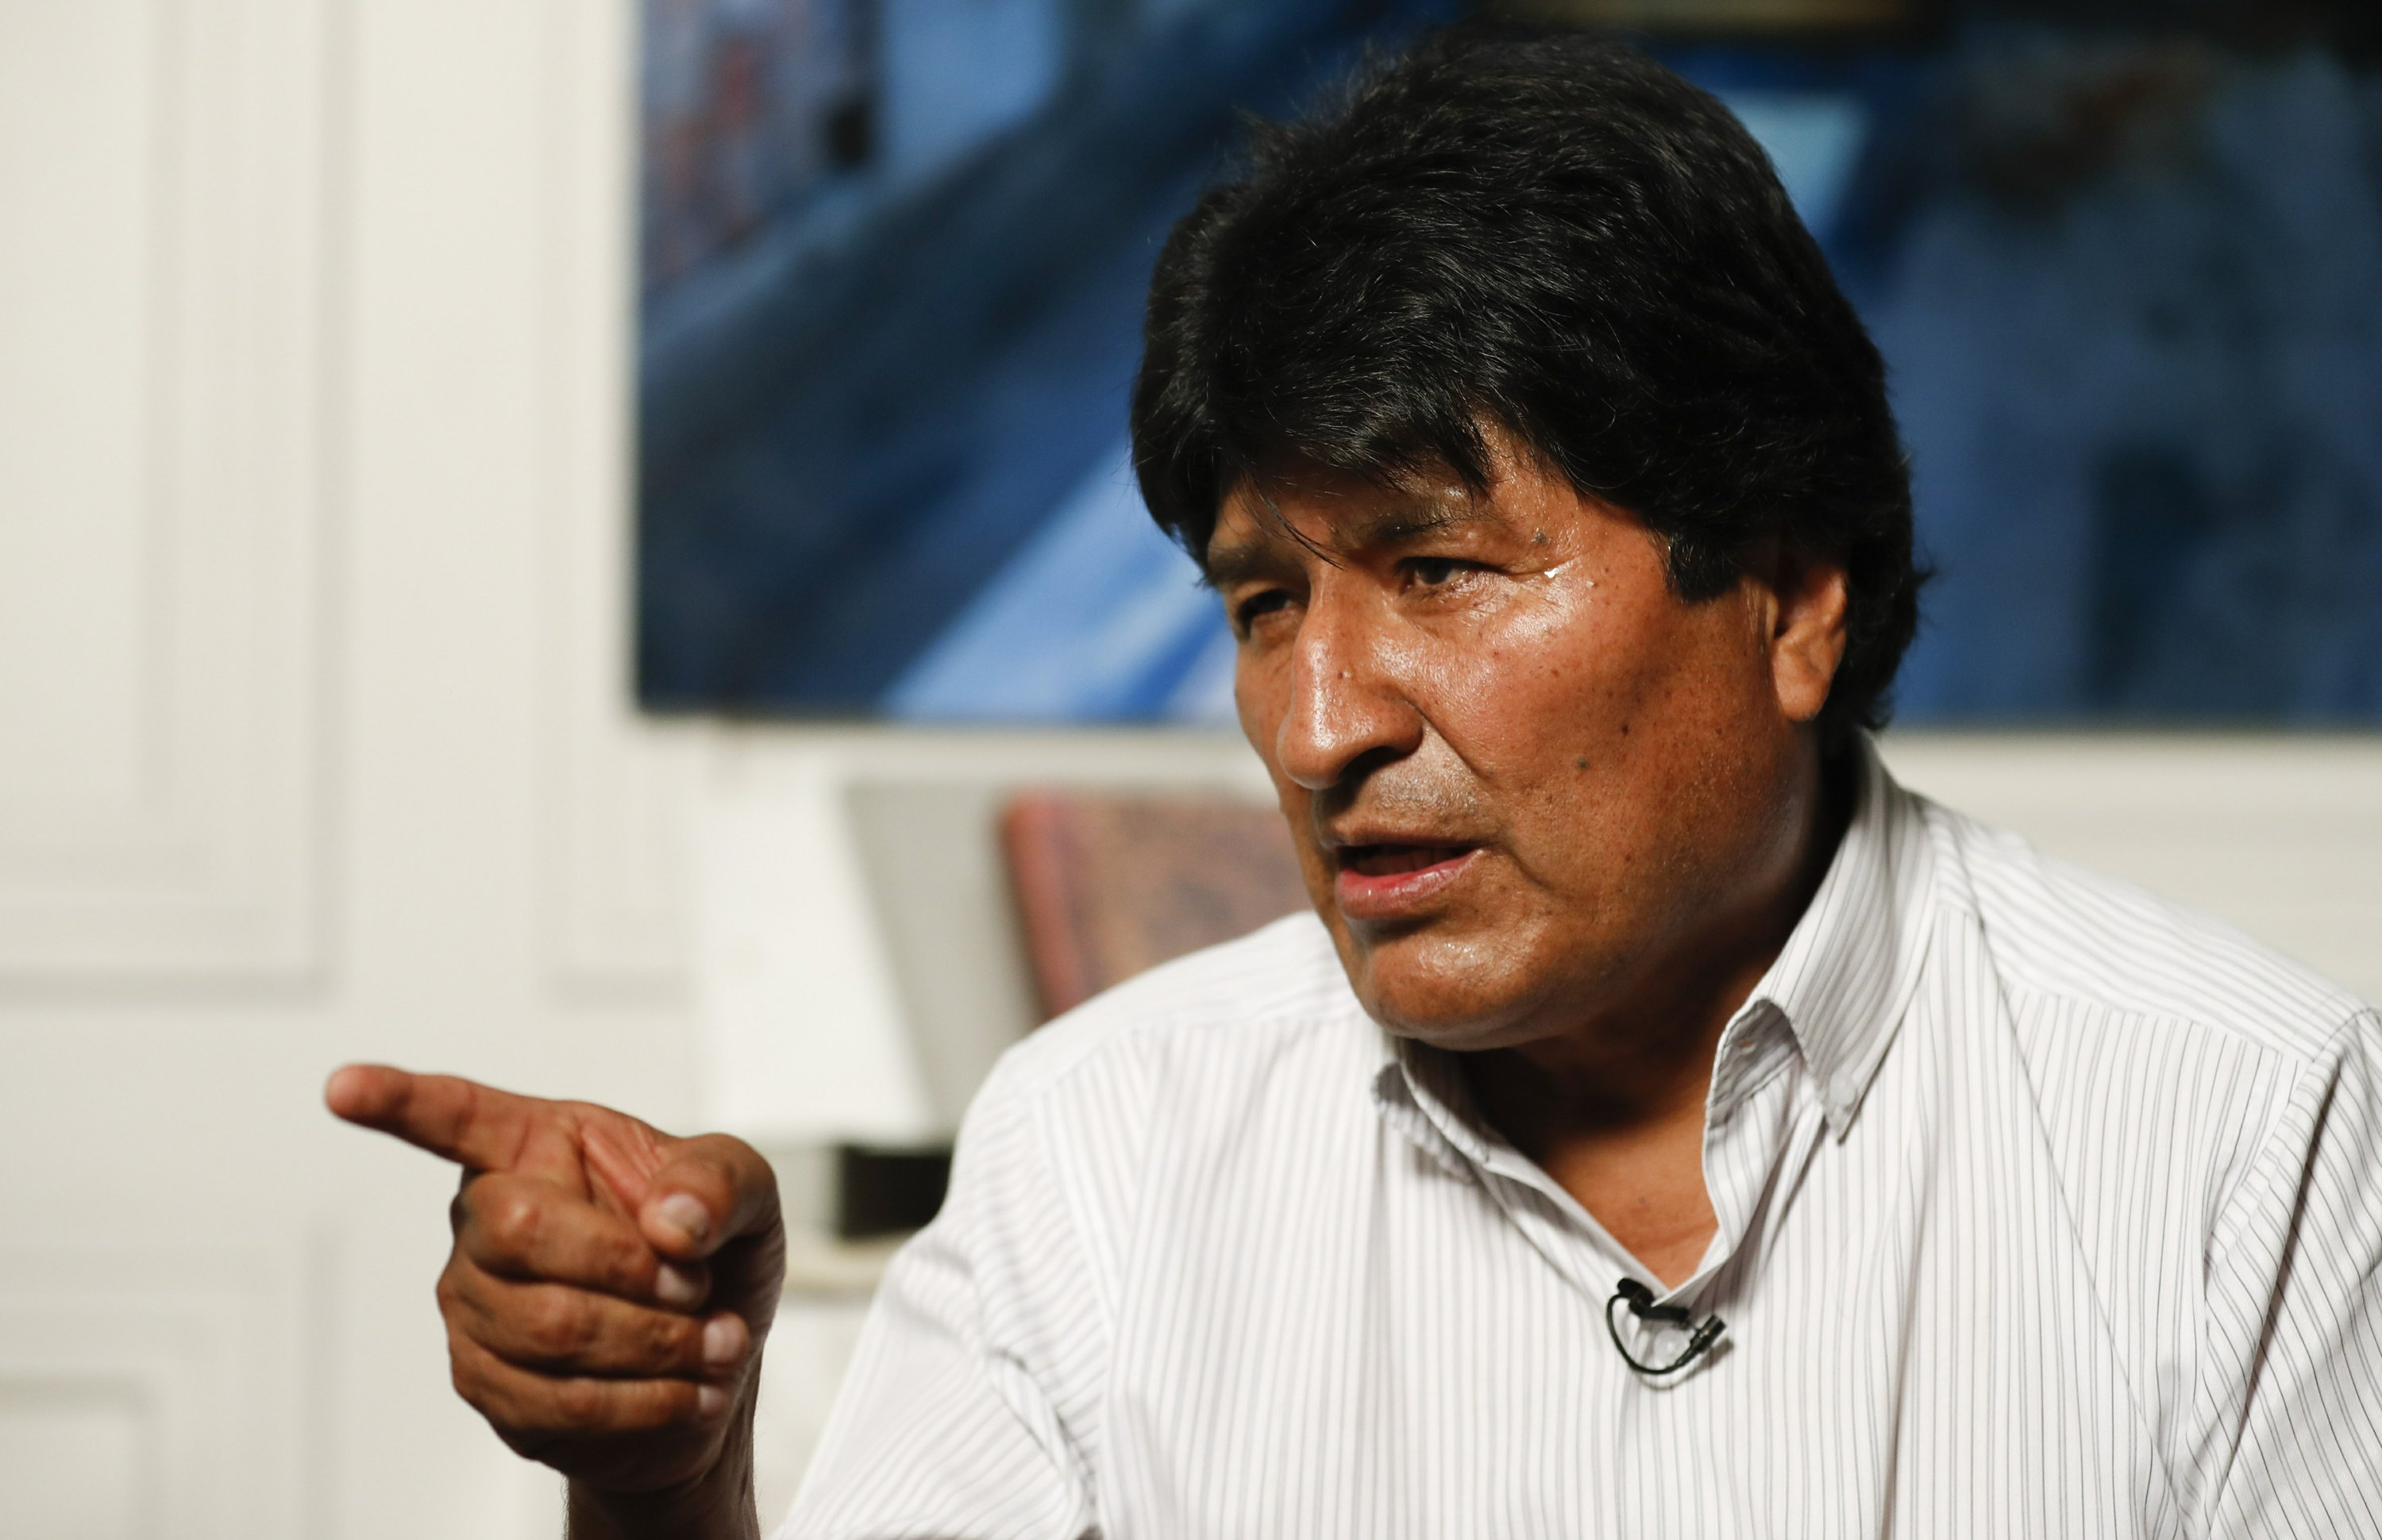 AP Interview: Evo Morales wants UN mediation in Bolivia